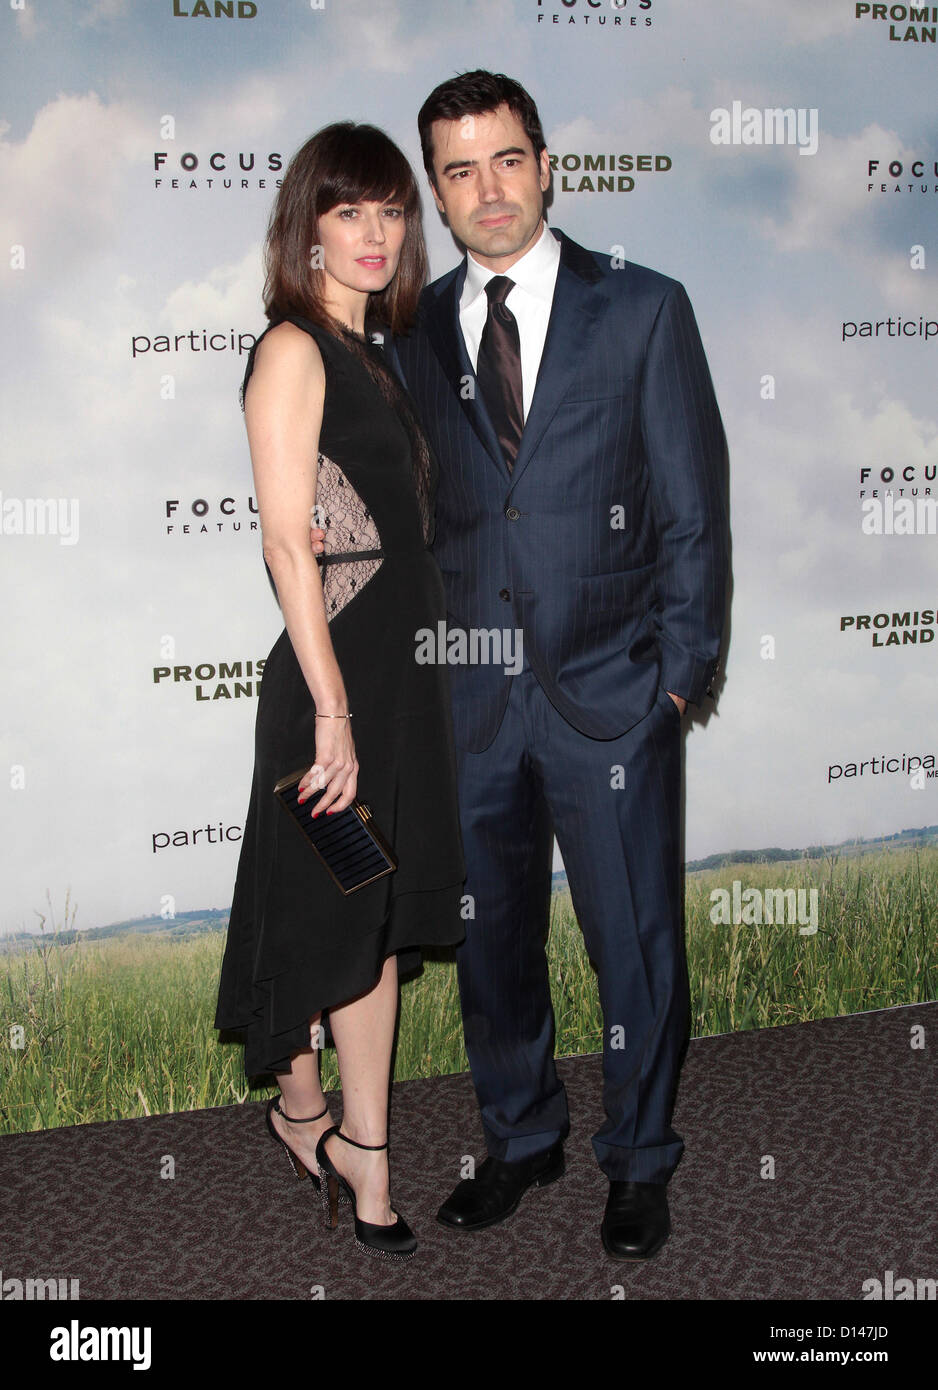 RON LIVINGSTON ROSEMARIE DEWITT PROMISED LAND PREMIERE WEST HOLLYWOOD CALIFORNIA USA 06 December 2012 - Stock Image